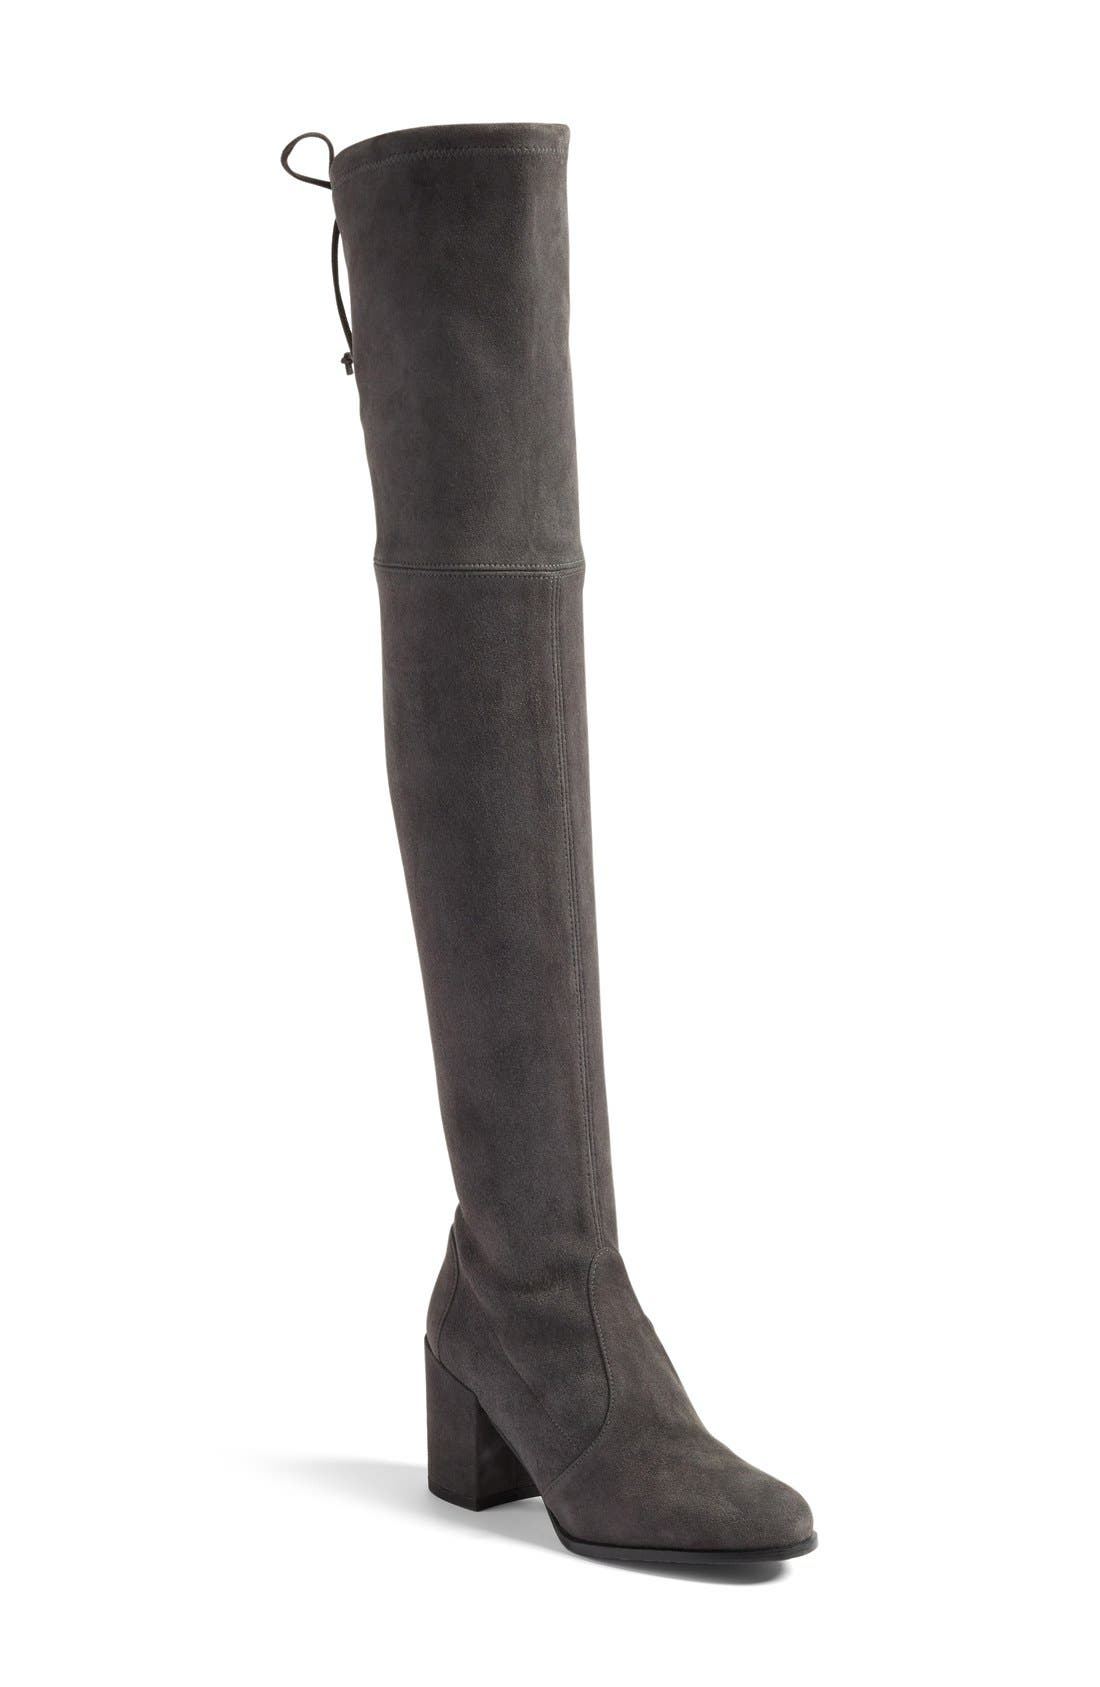 Tieland Over the Knee Boot,                             Main thumbnail 4, color,